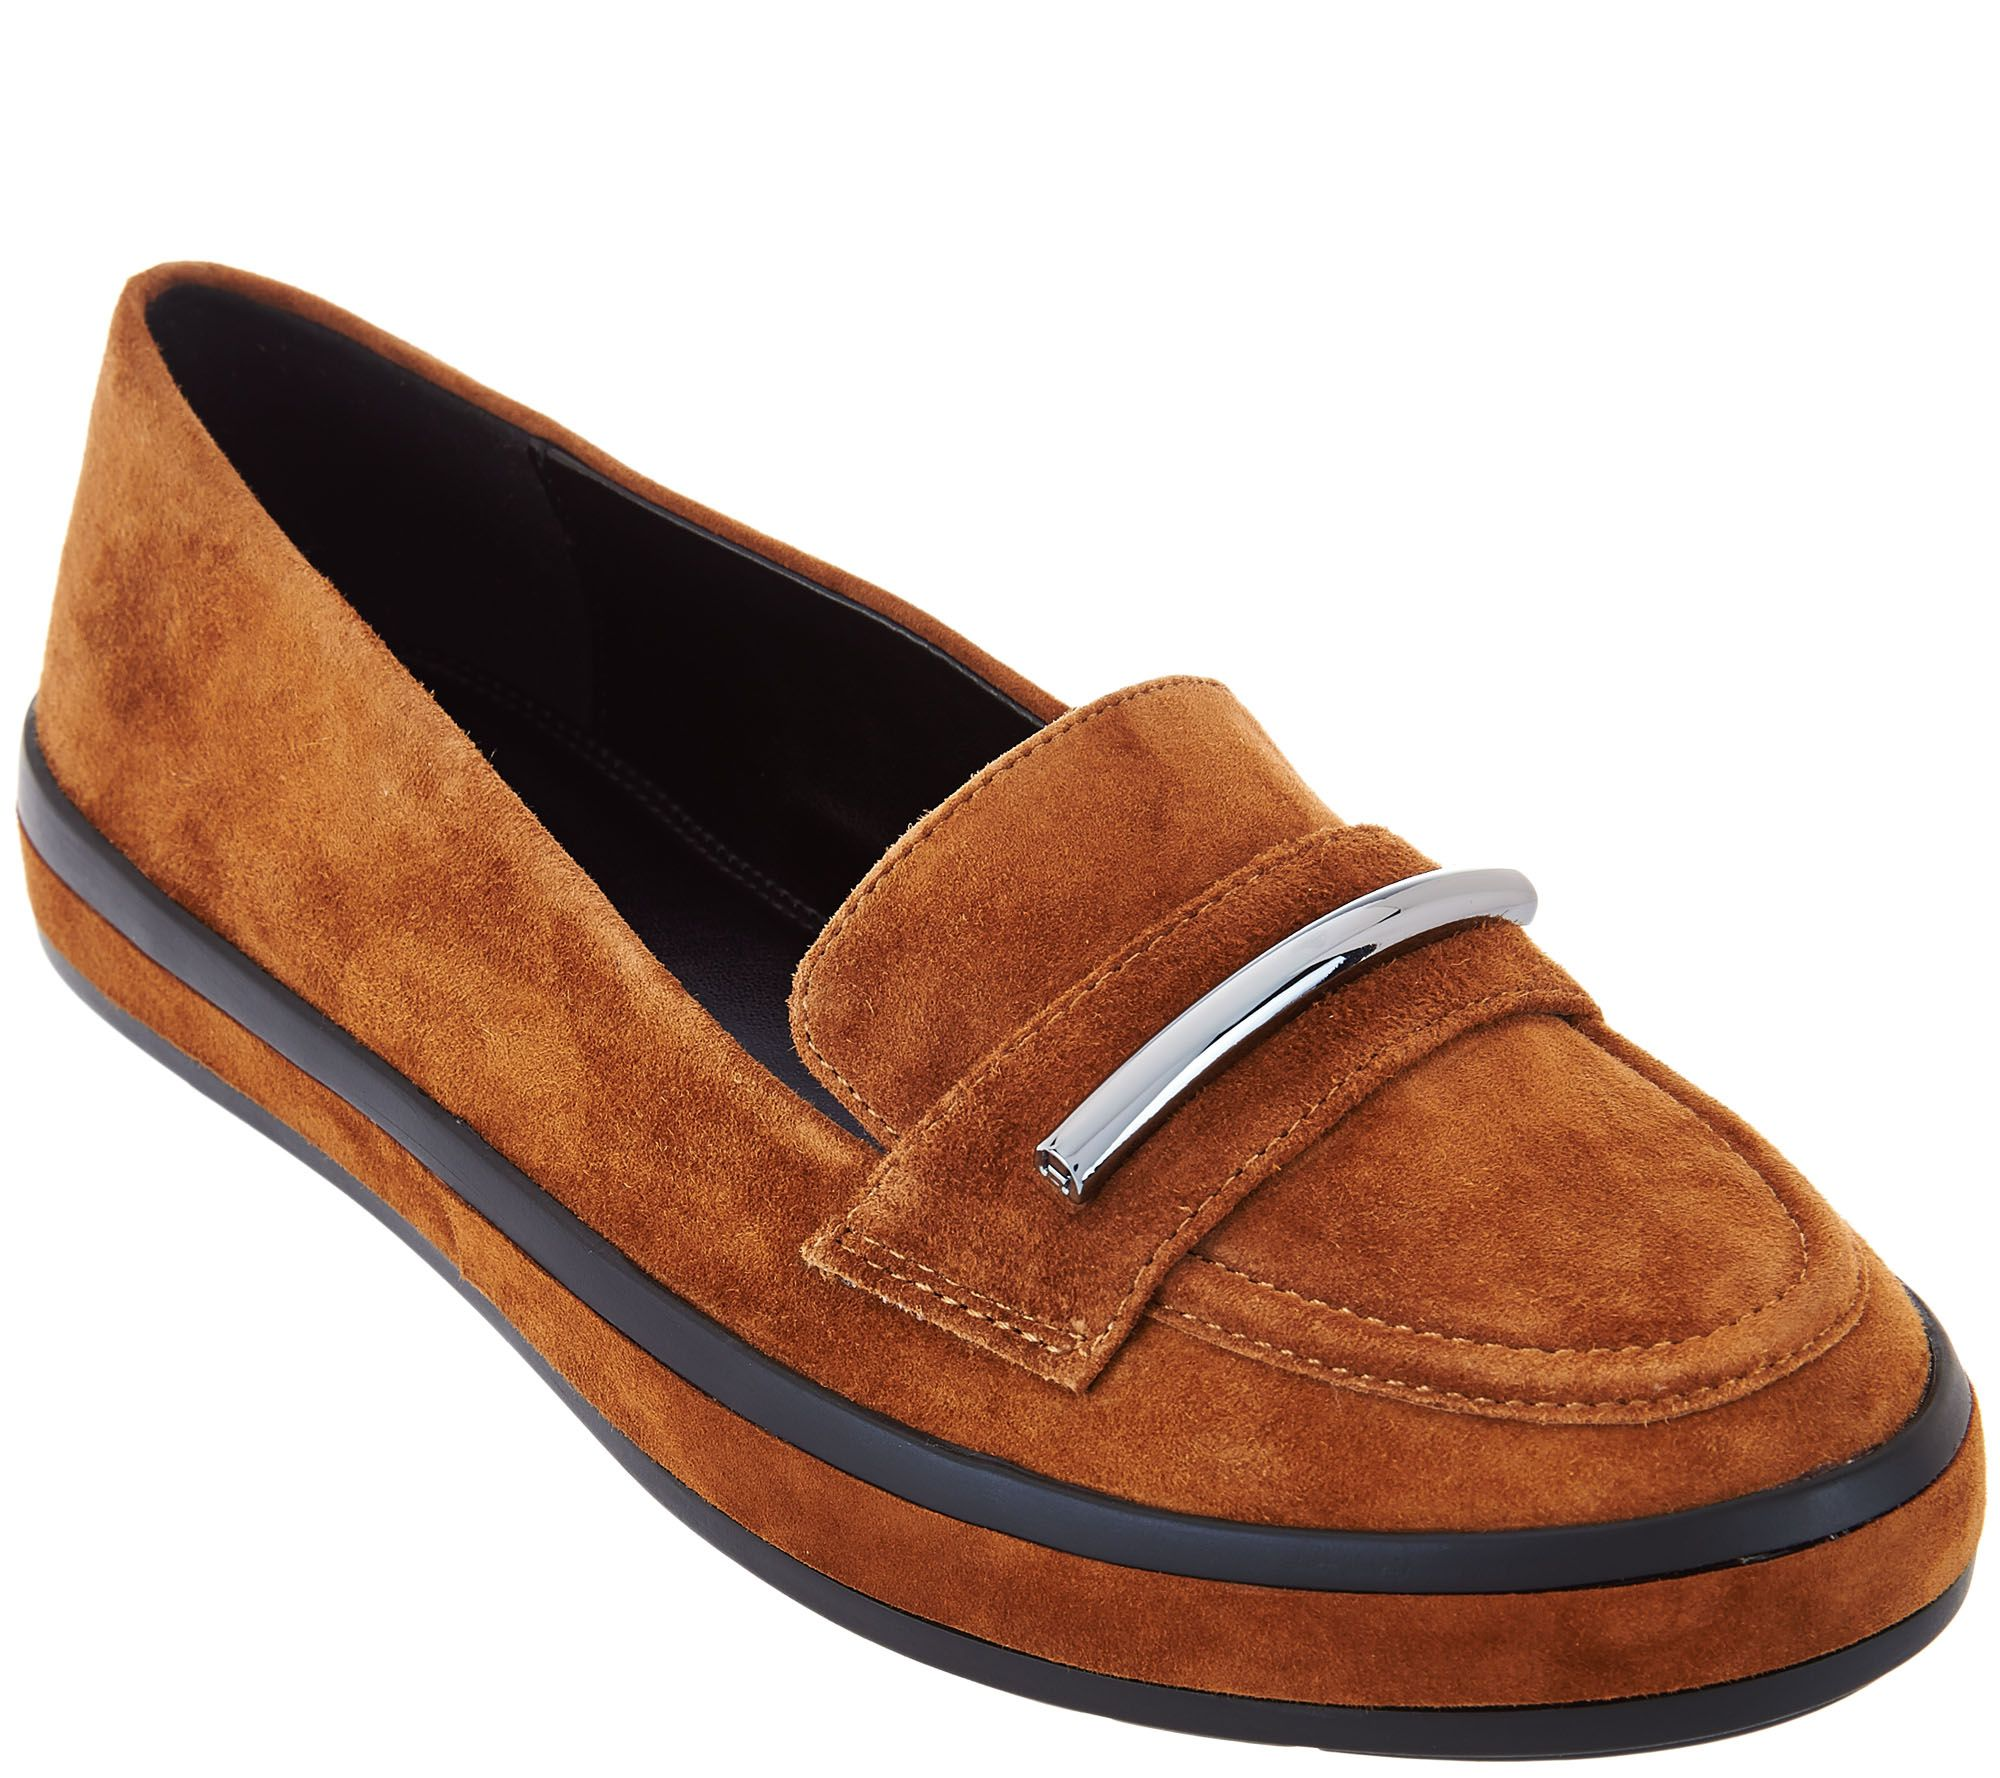 original online professional cheap price H by Halston Suede Slip-On Shoes with Hardware Detail - Brynn 9zF2835